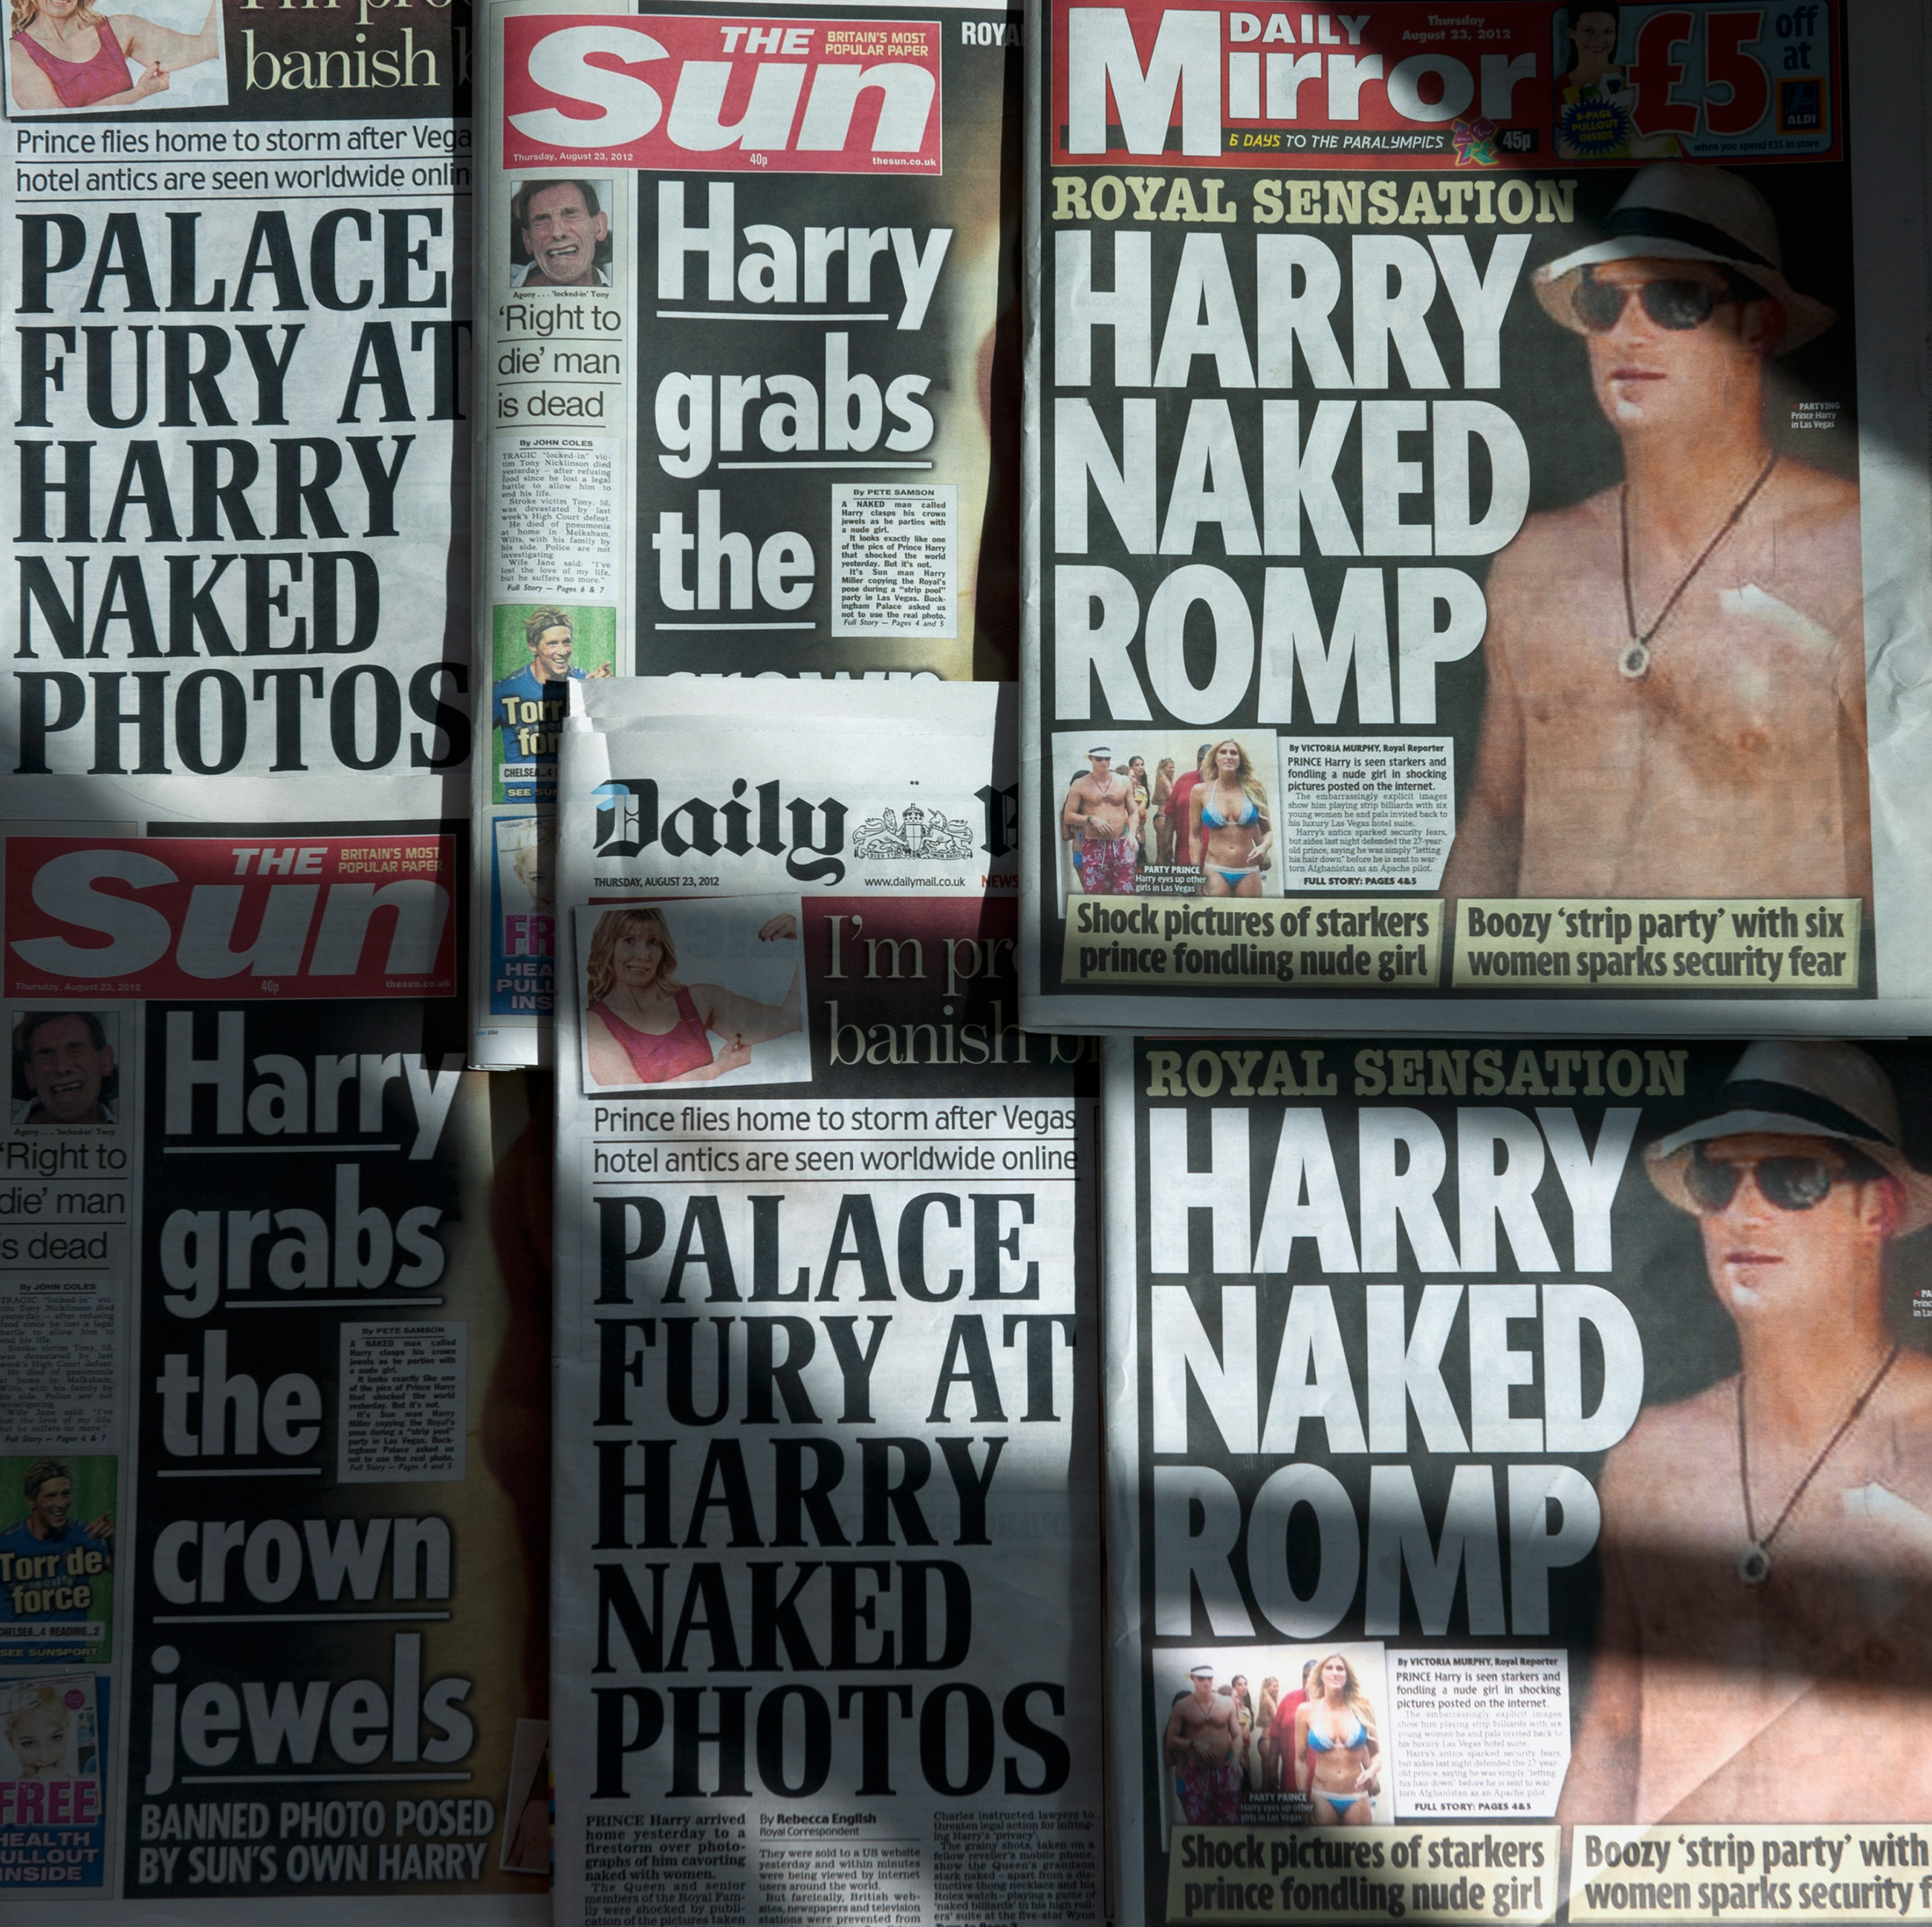 An arrangment of British daily newspapers photographed in London on August 23, 2012 shows the front-page headlines and stories regarding nude pictures of Britain's Prince Harry. Daniel Sorabj—AFP/Getty Images.